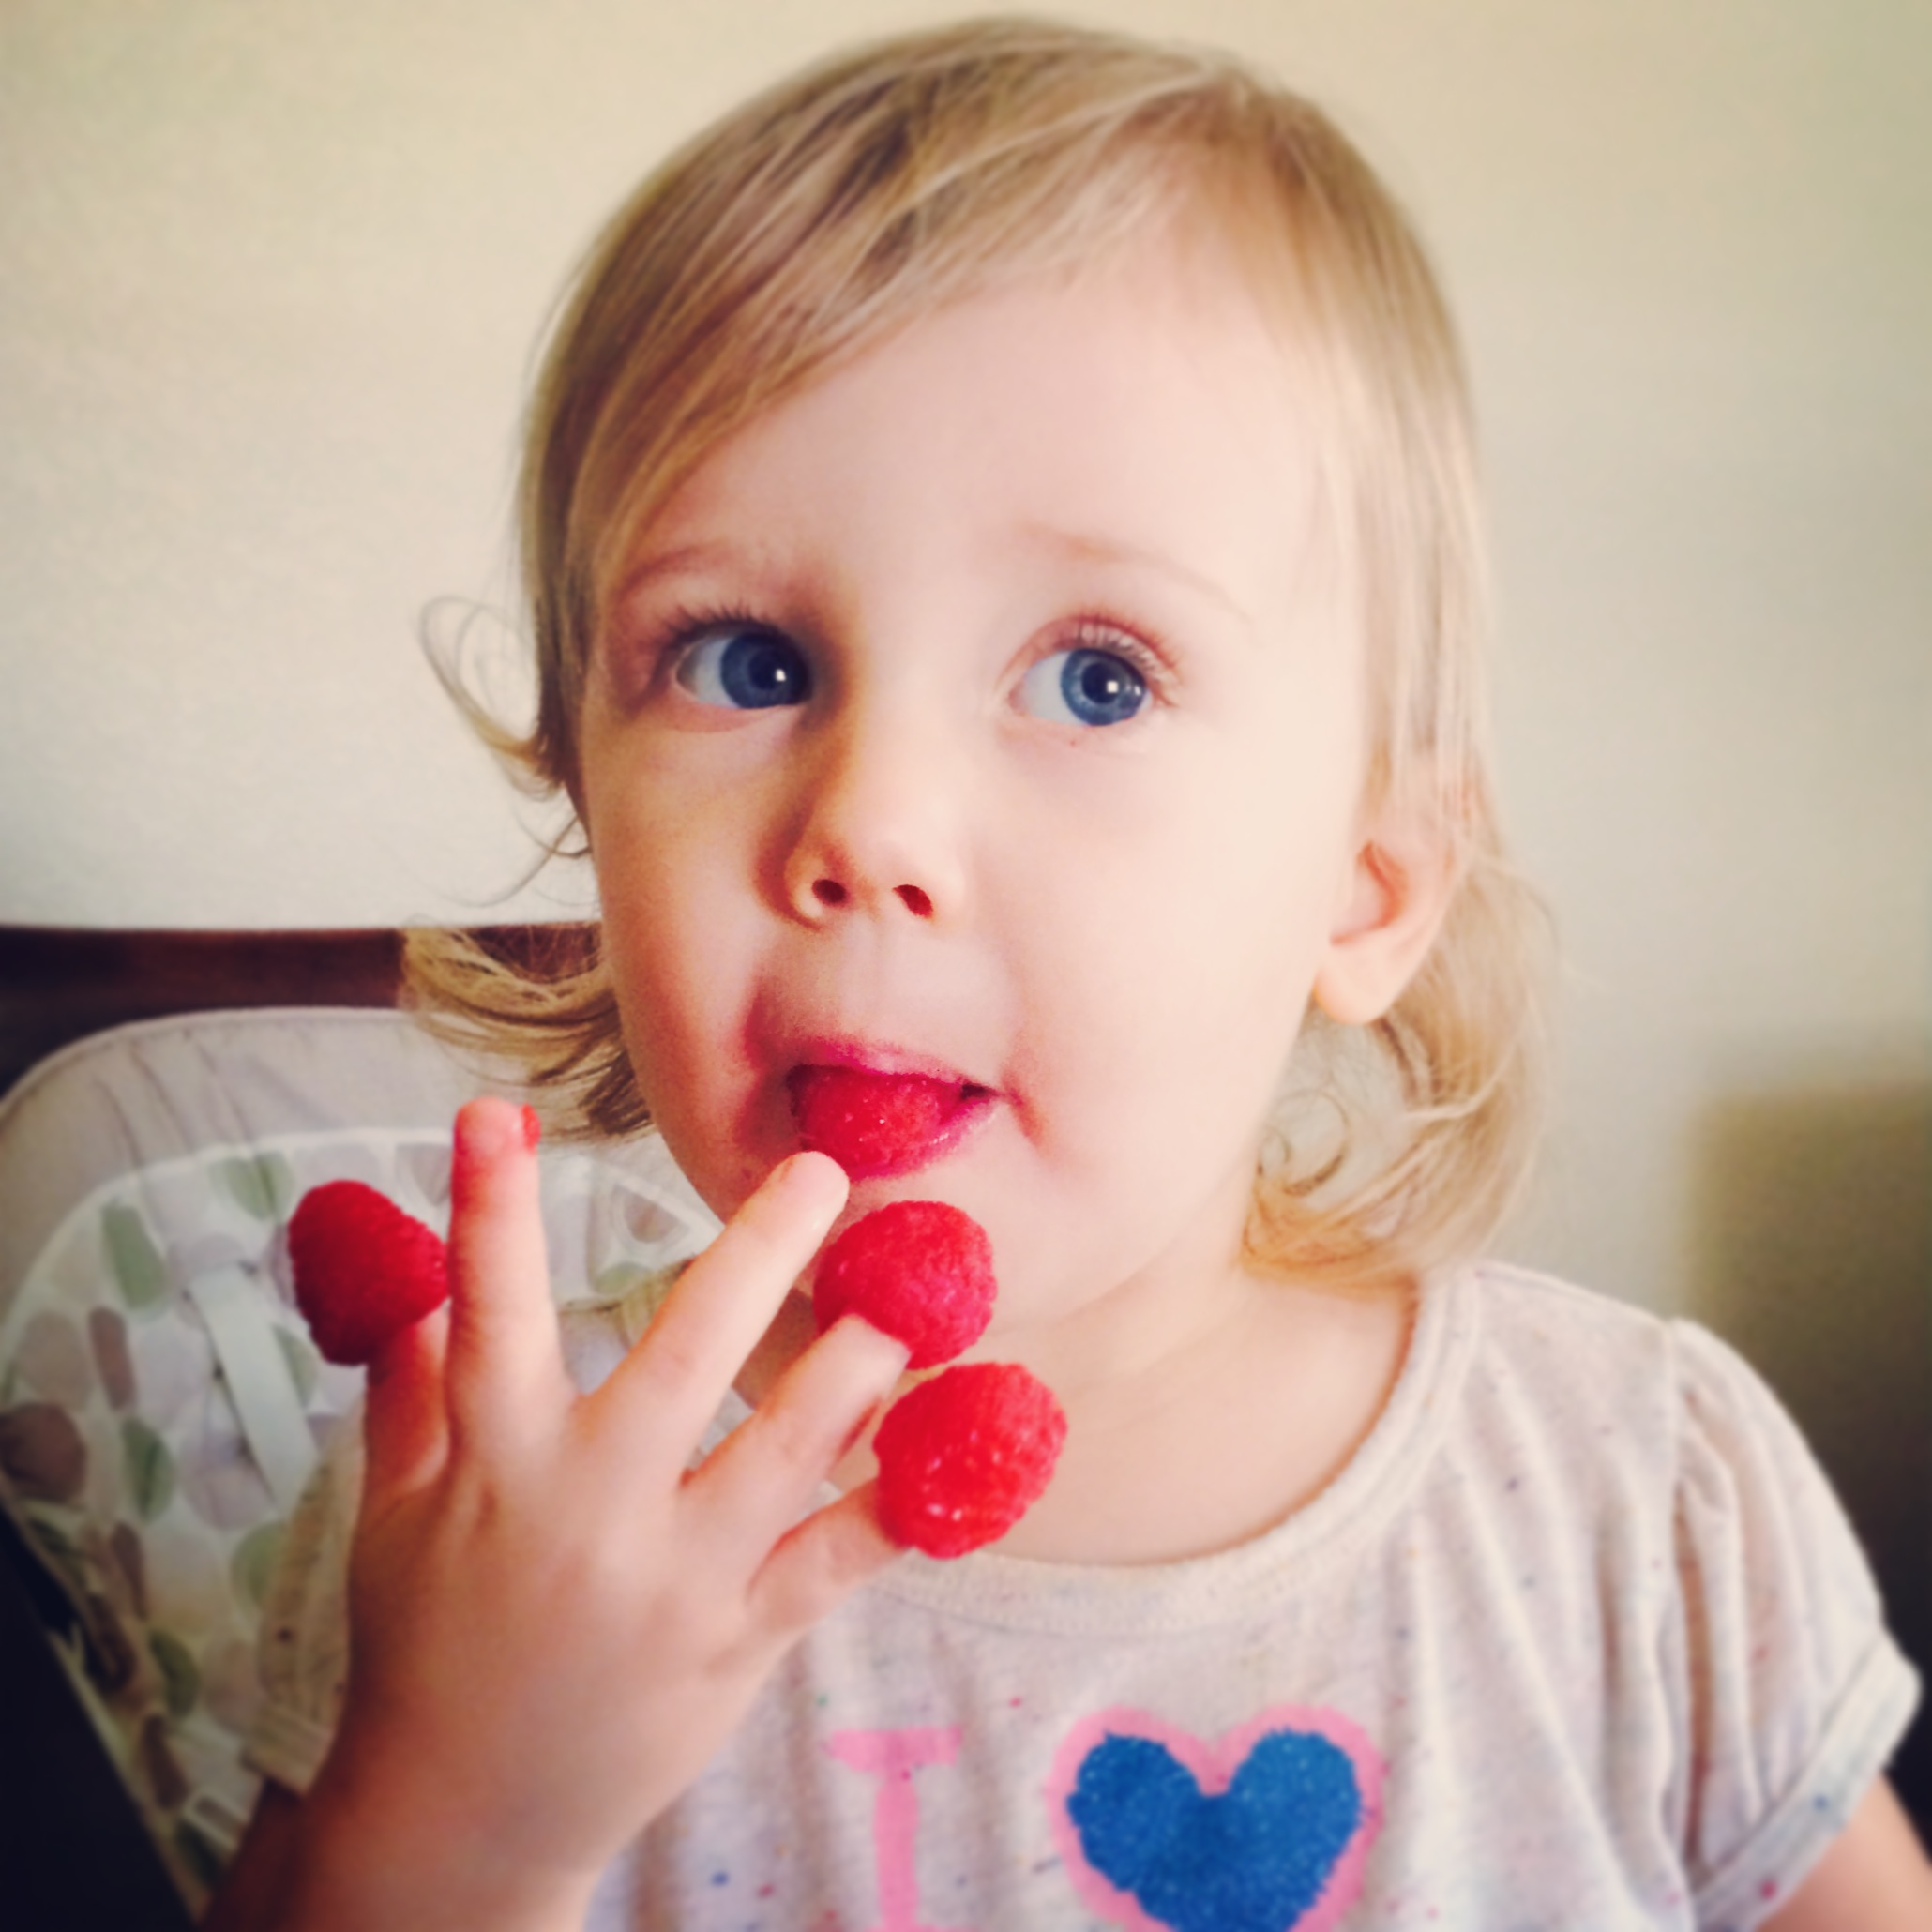 Chloe Loves Berries